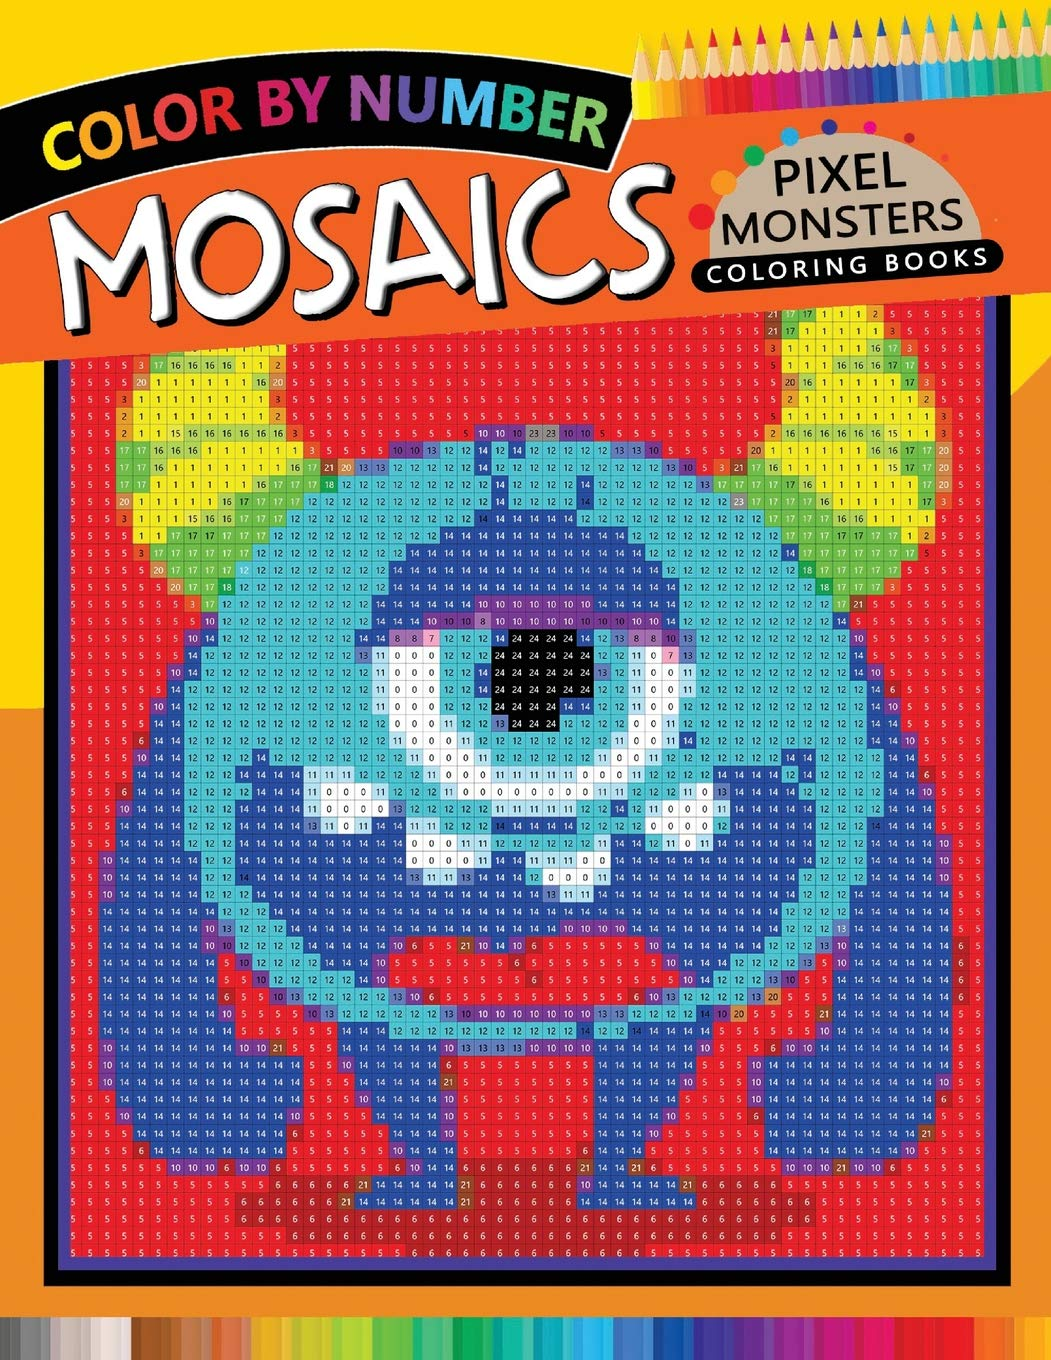 Amazon.com: Pixel Monsters Mosaics Coloring Books: Color by Number ...